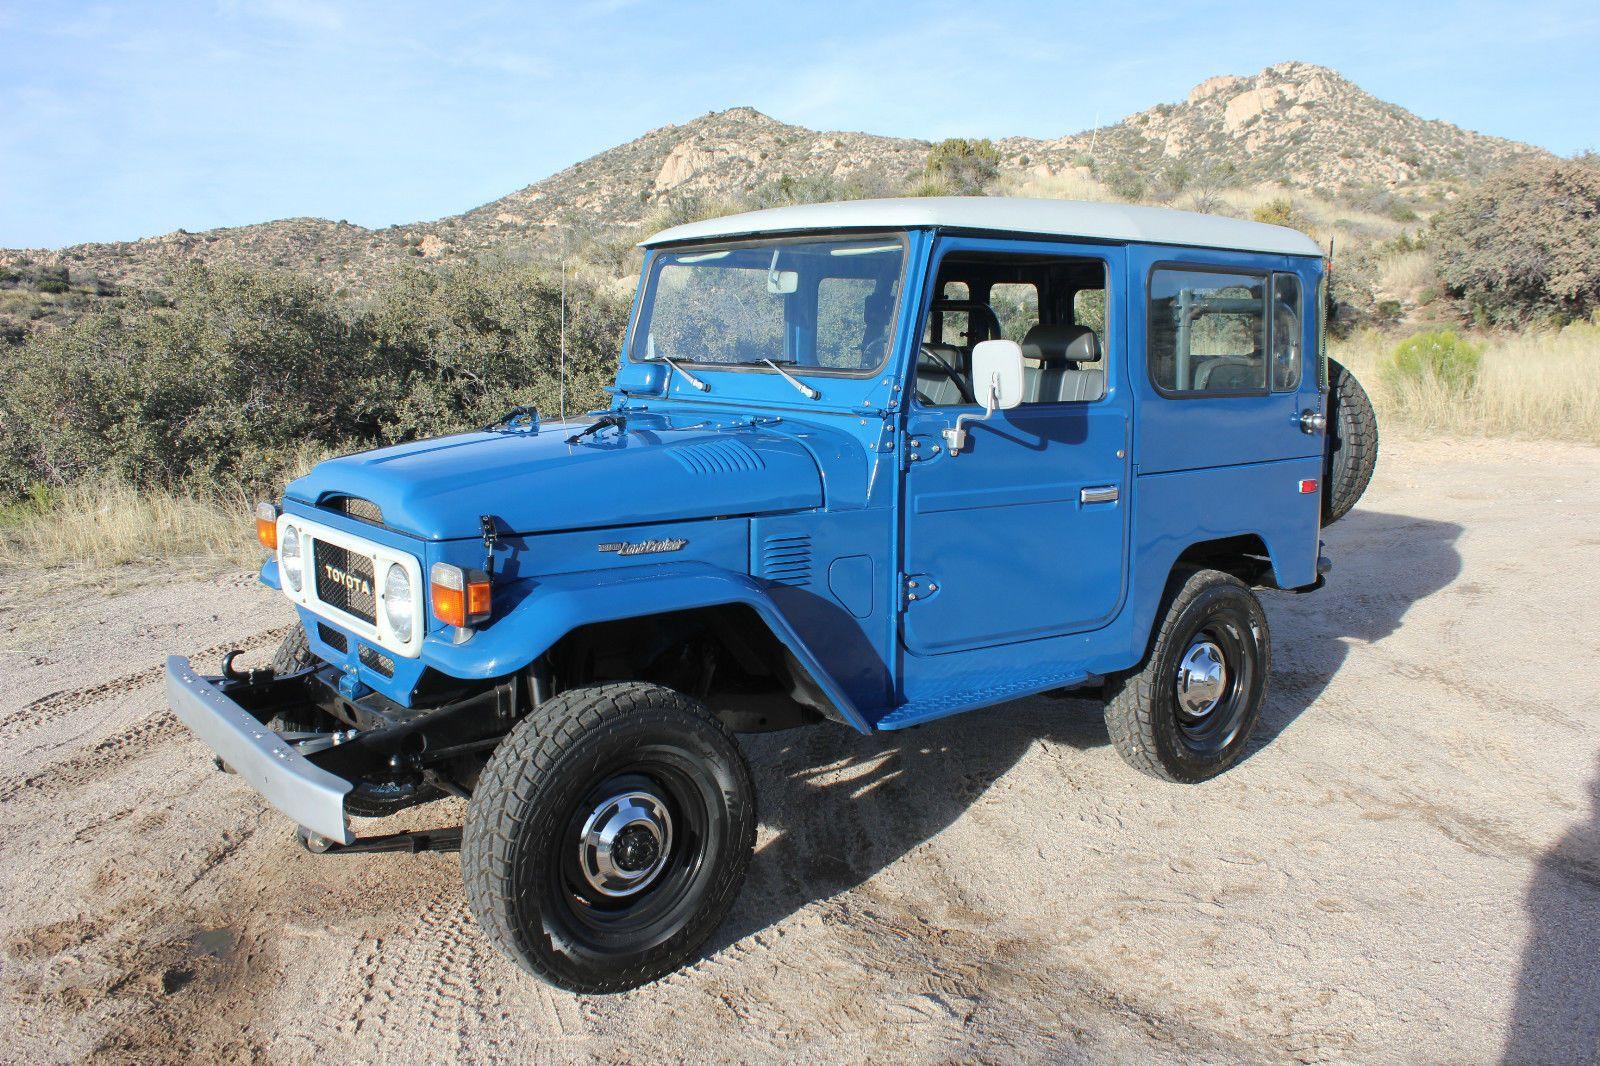 1980 fj40 blue toyota Land Cruiser a | Land Cruiser Of The Day!